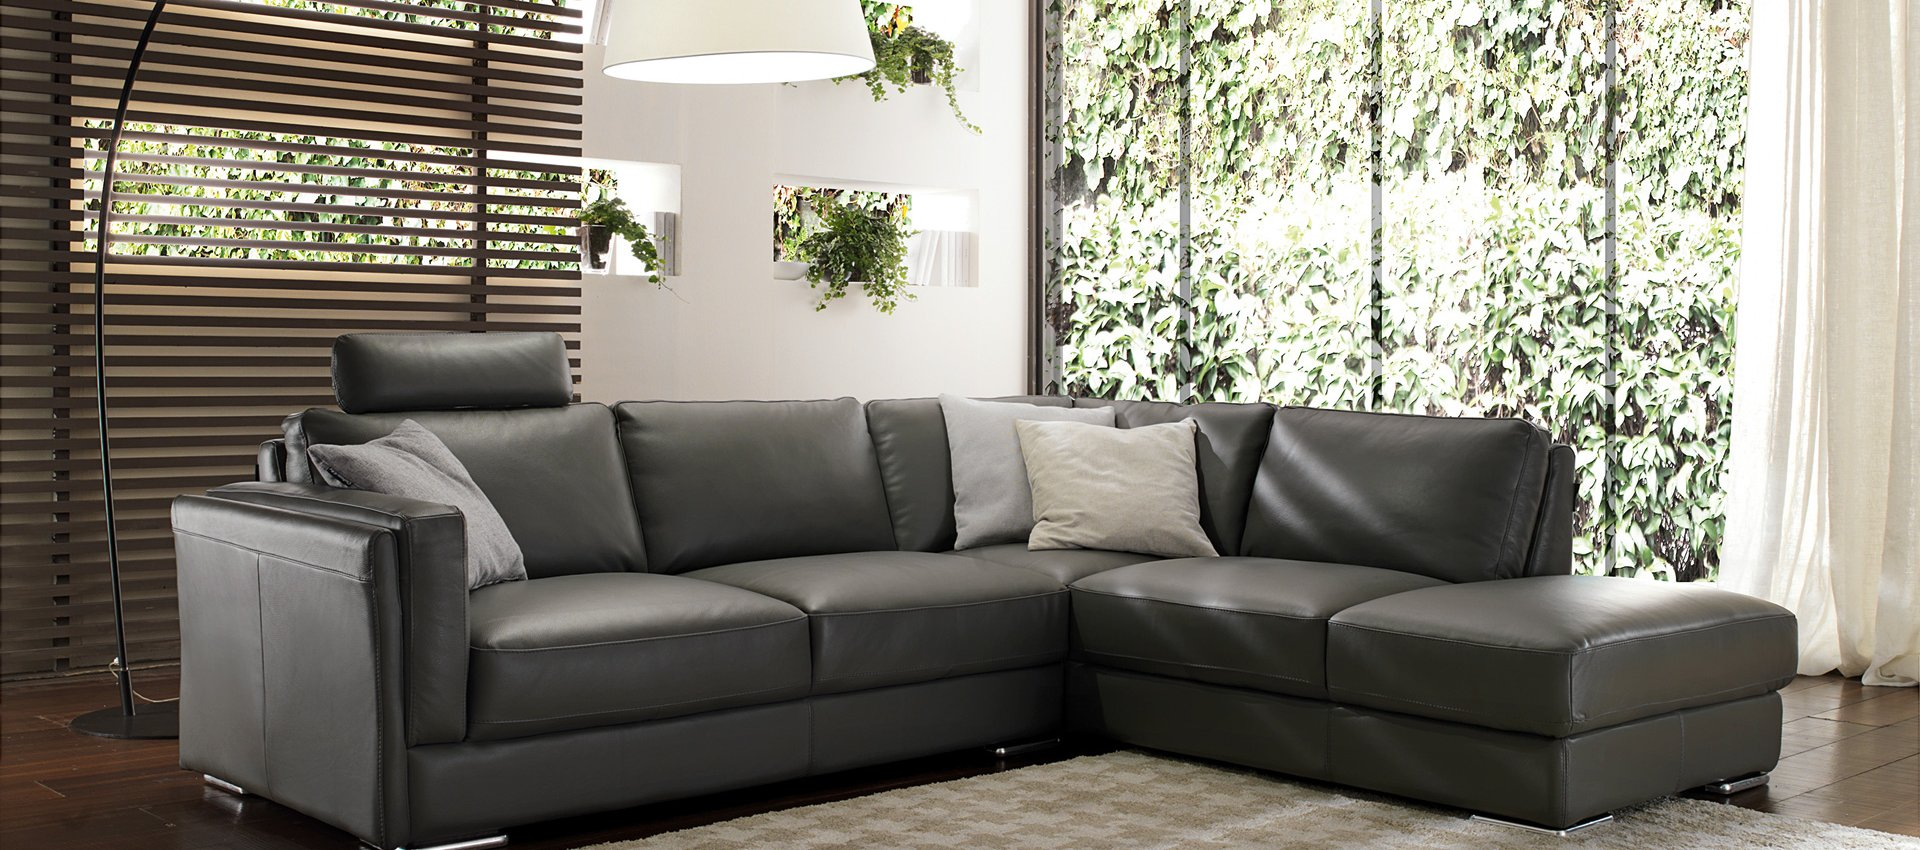 Canap cuir canap lit fauteuil relax chambres lit for Chateau d ax catania